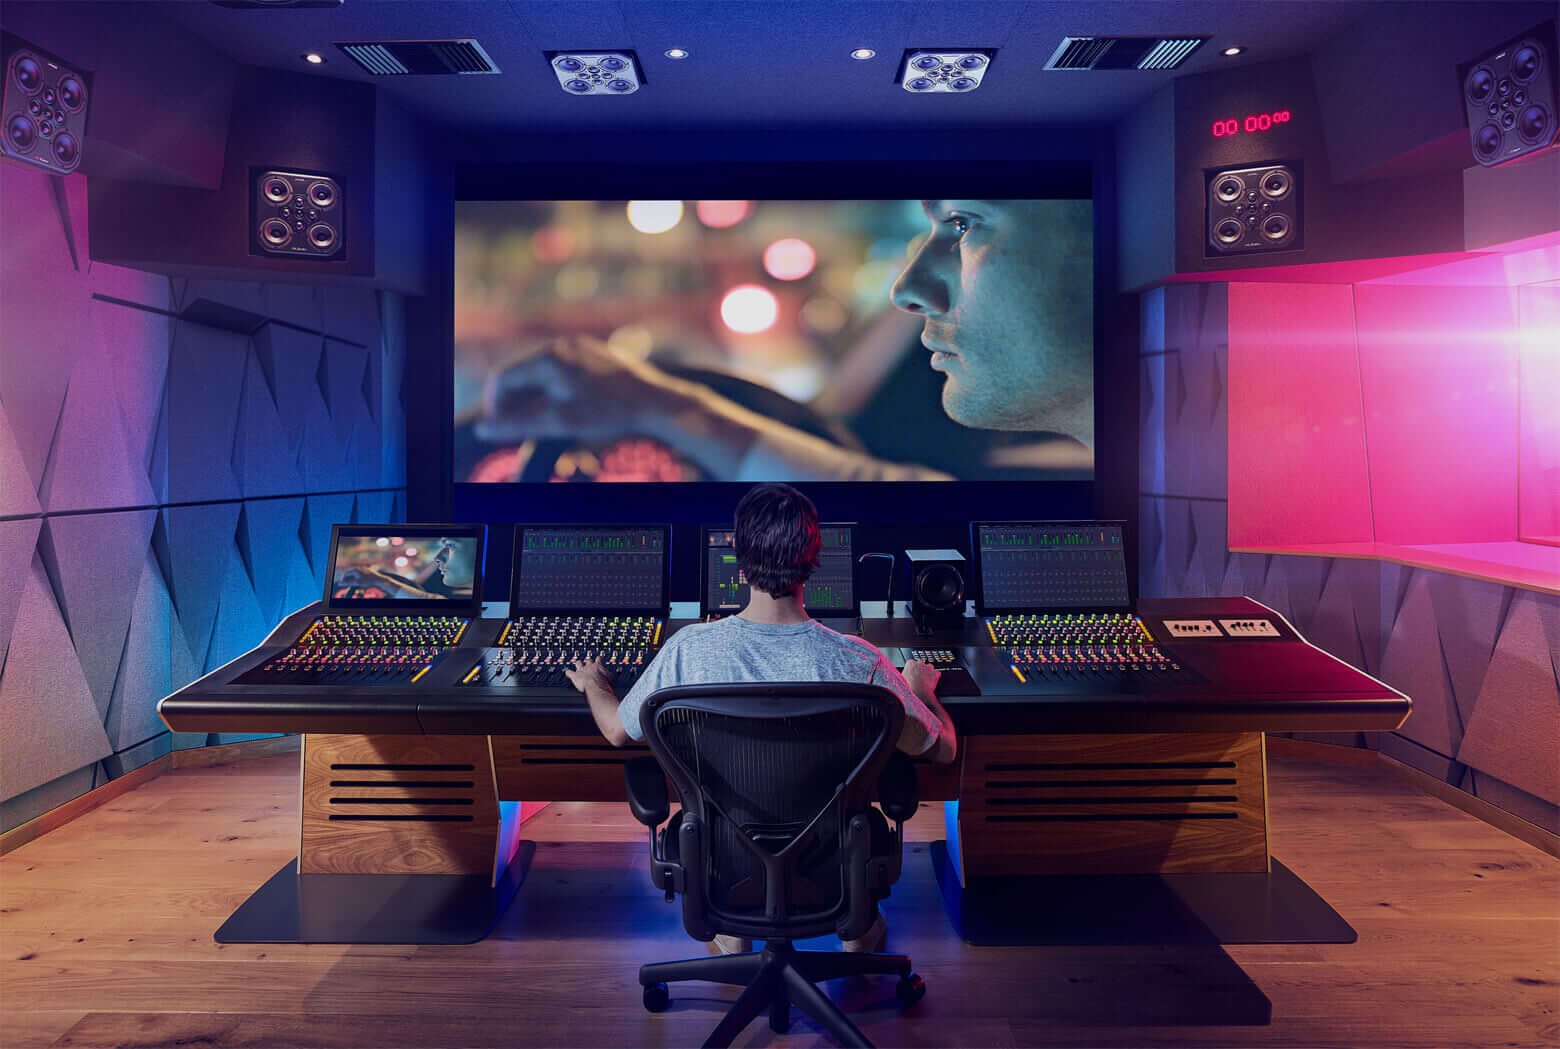 A picture of a man sitting in a film studio mixing a film